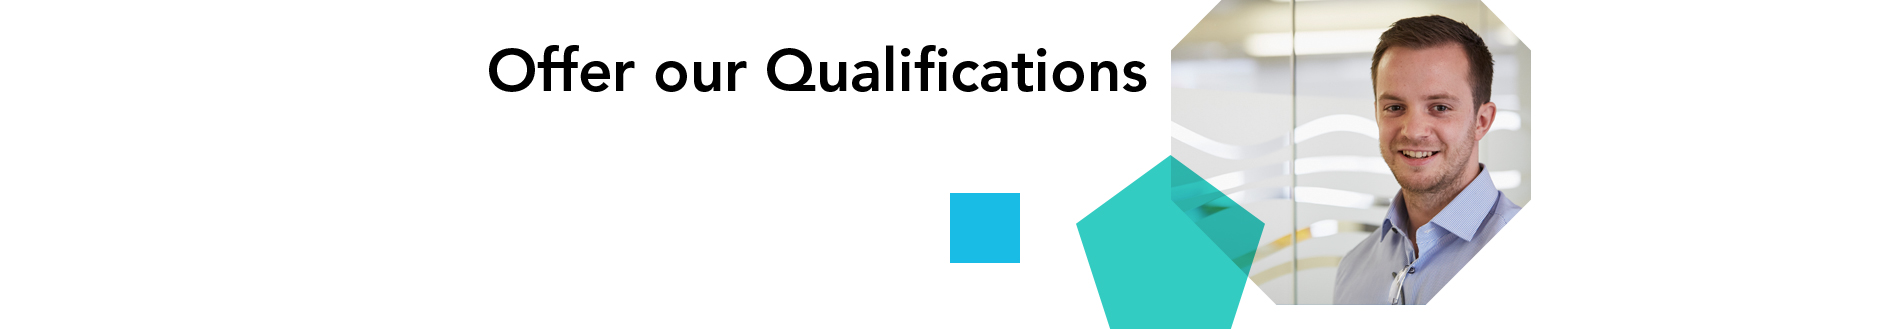 Offer_our_qualifications_-_1900x330 jpg